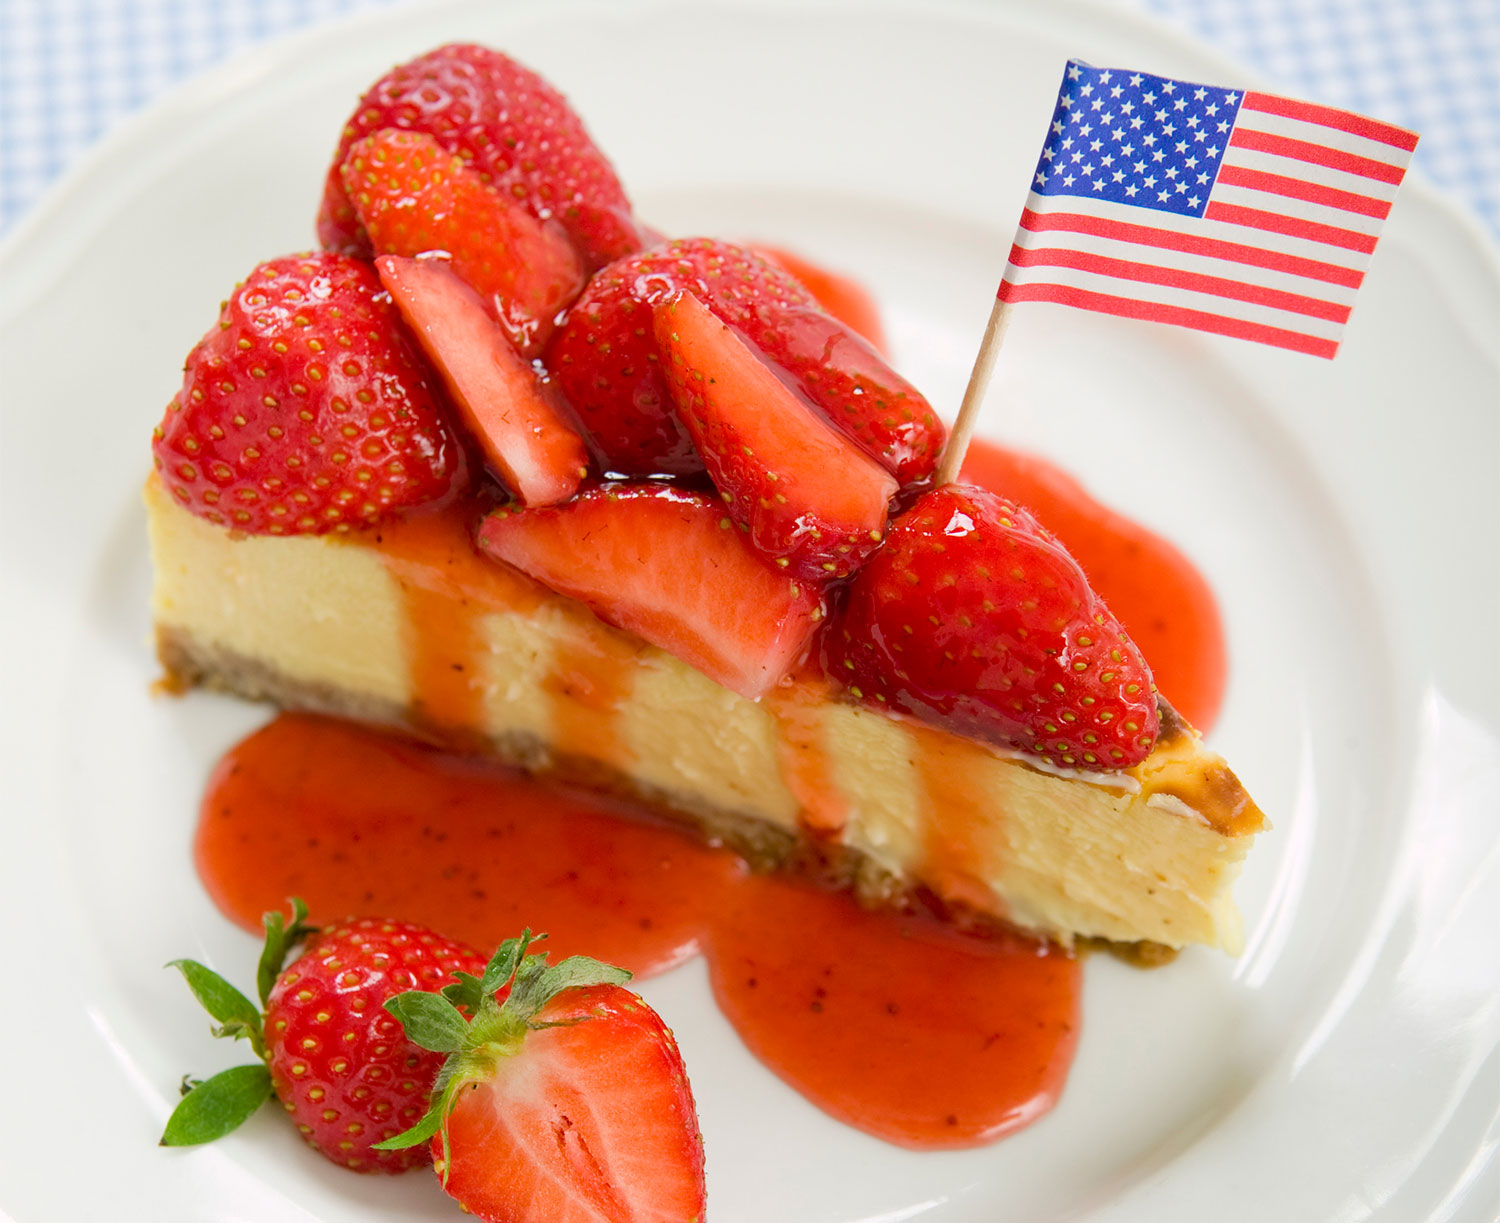 Cheesecake with Stawberries